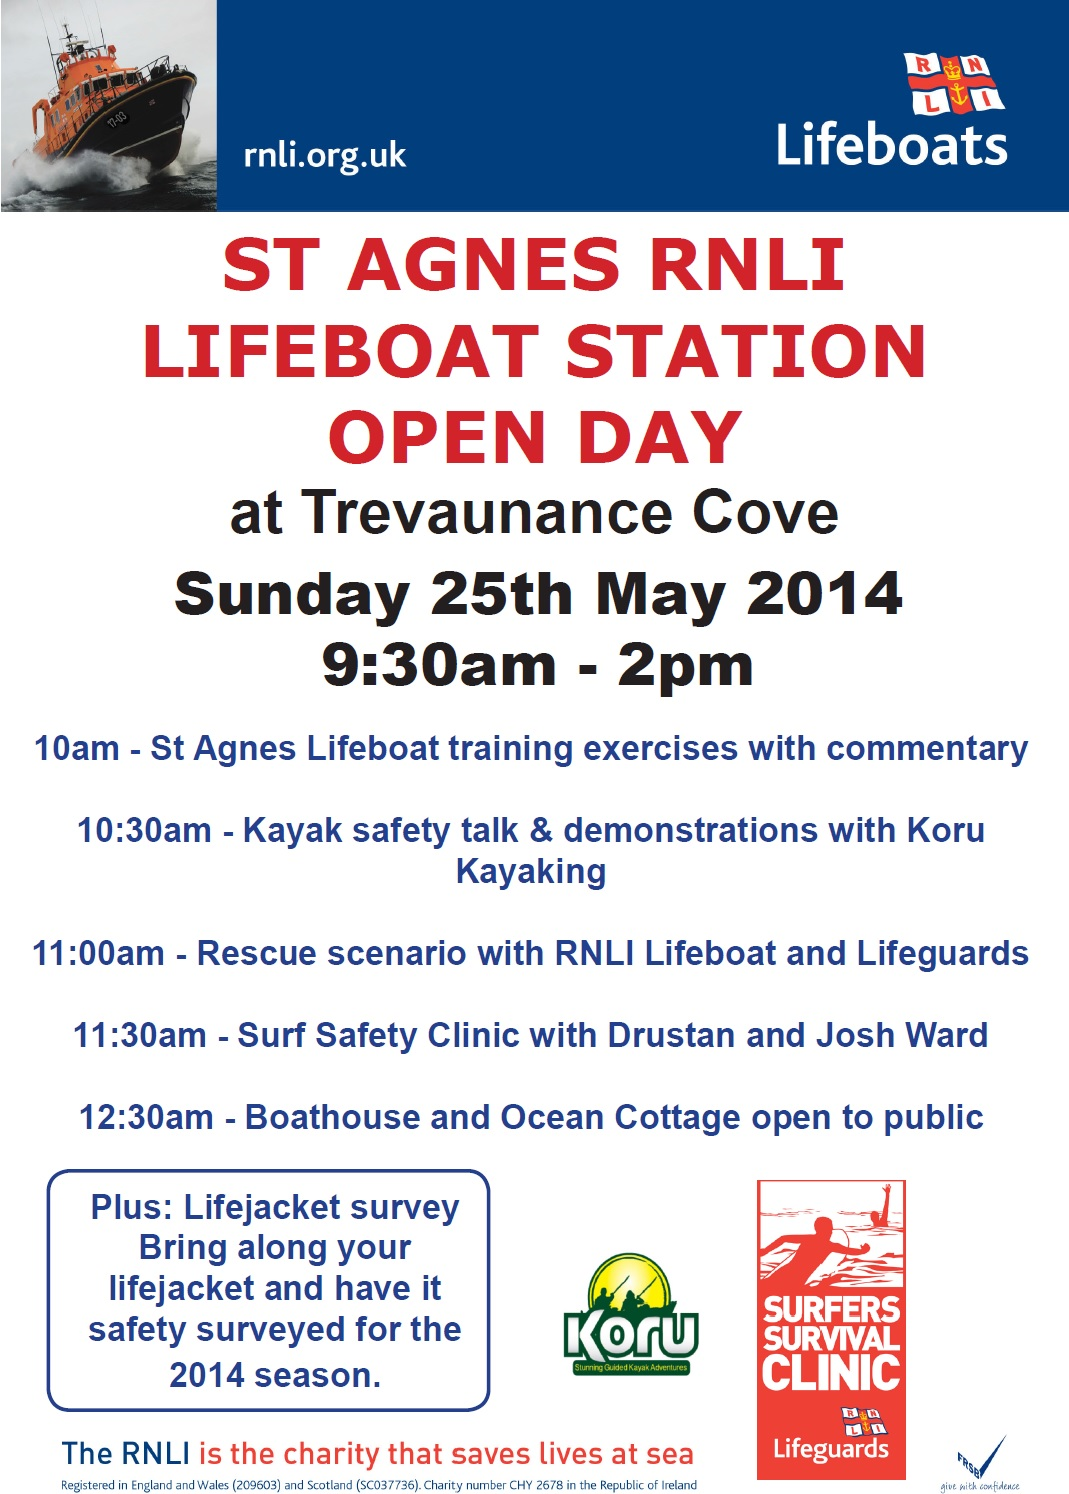 RNLI Lifeboat Station Open Day